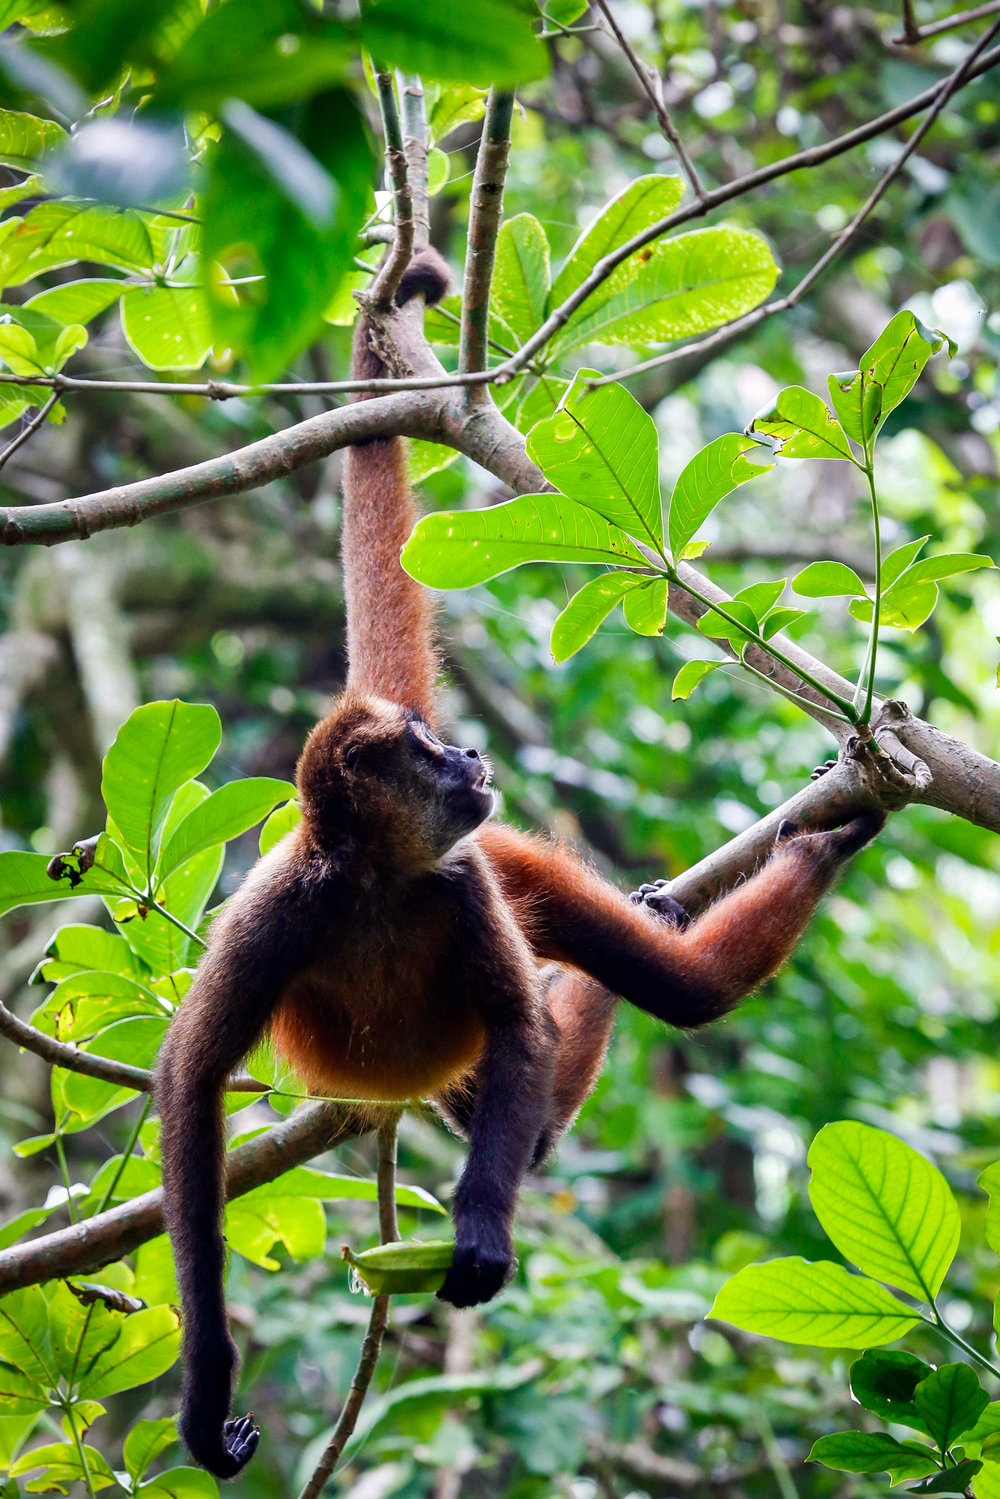 Spider Monkey by the Tail